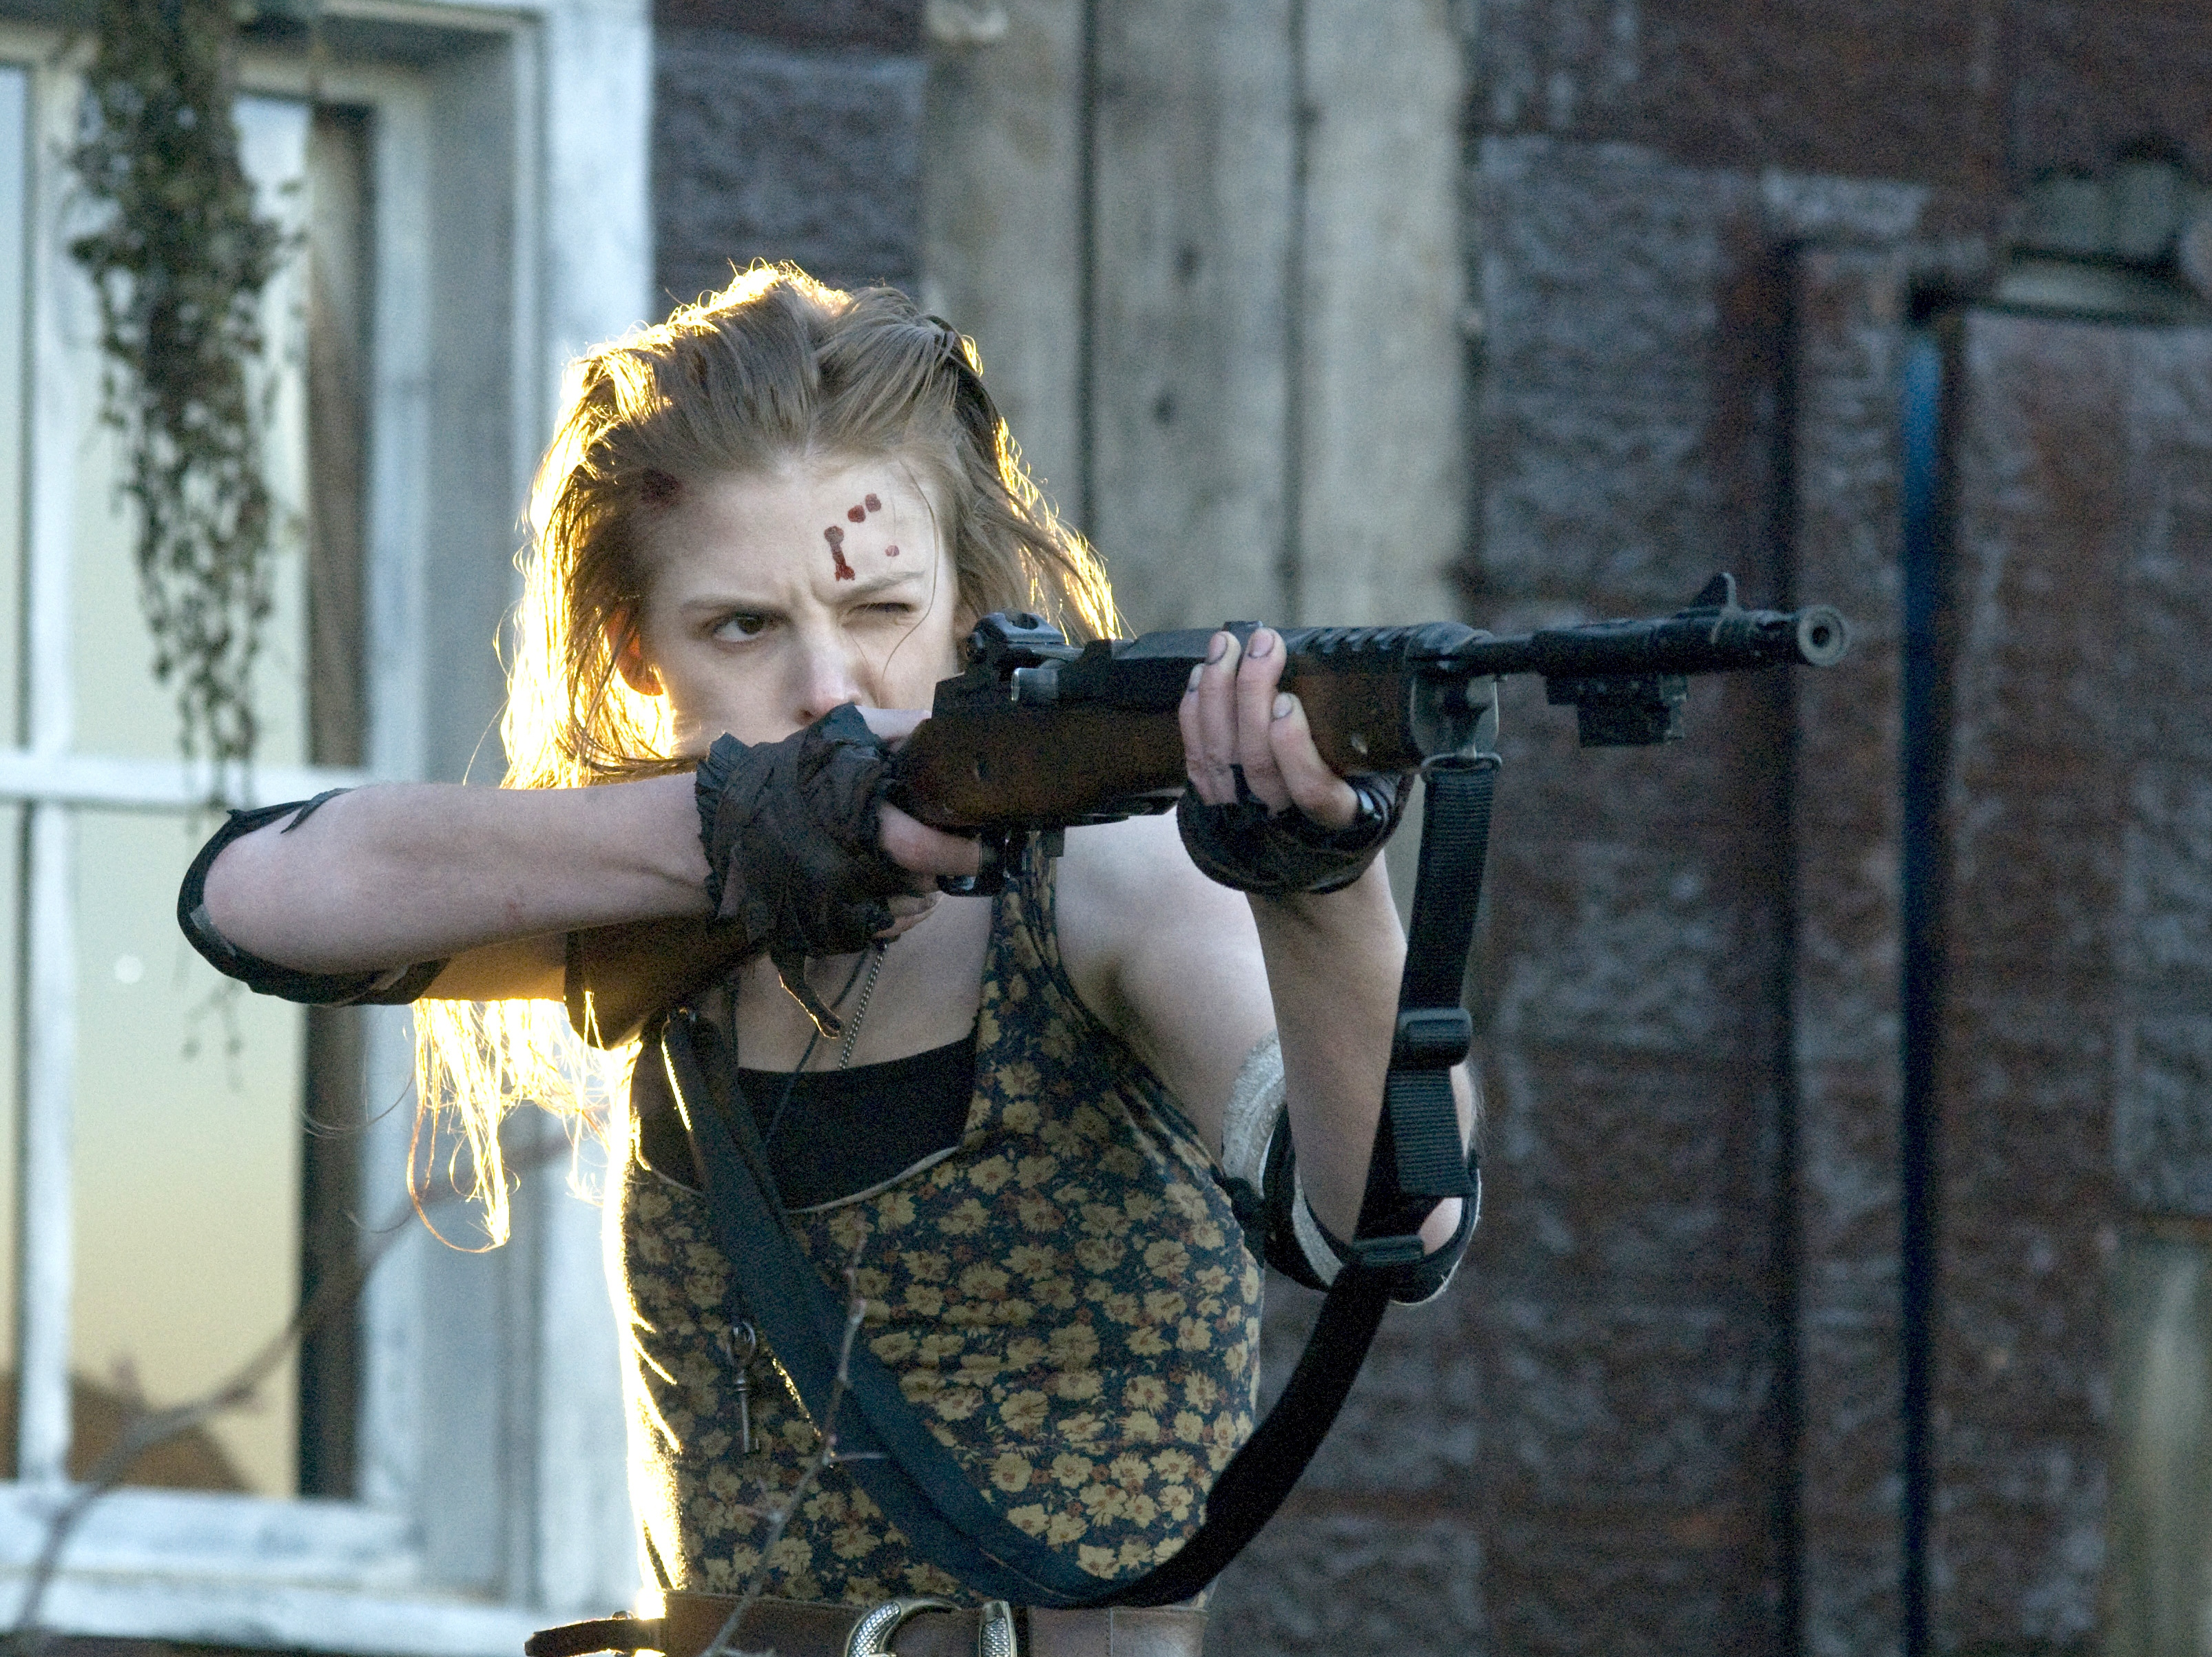 'The Day' Blu-ray Review: Post Apocalyptic Thriller Comes Up Empty